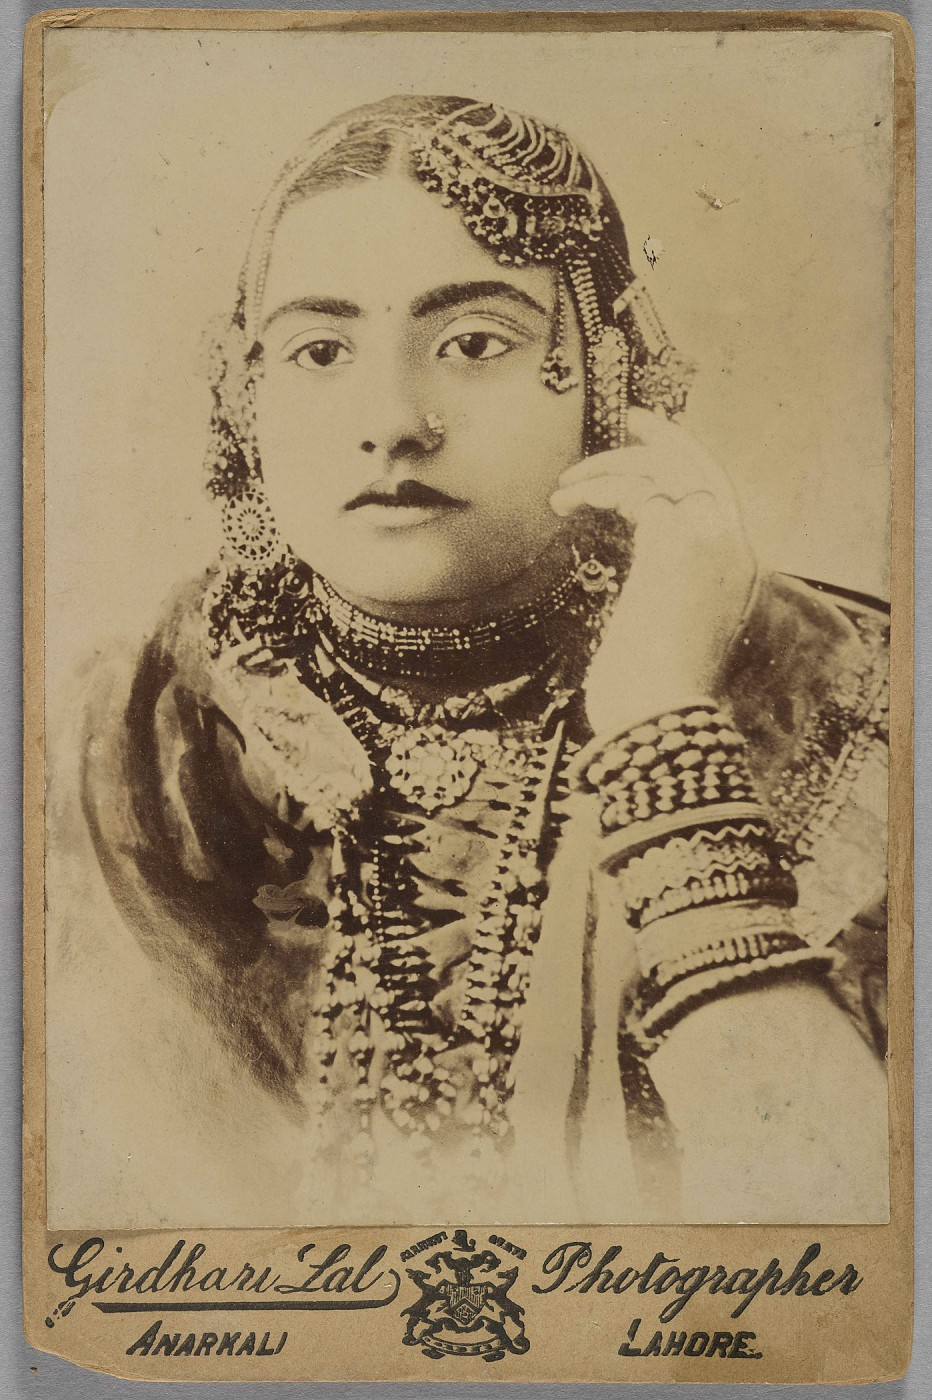 Photo by Girdhari Lal., </span><span><em>Portrait of a Woman, c1885, Lahore, India</em>, </span><span>Albumen print mounted on board, 4 x 6 inches.